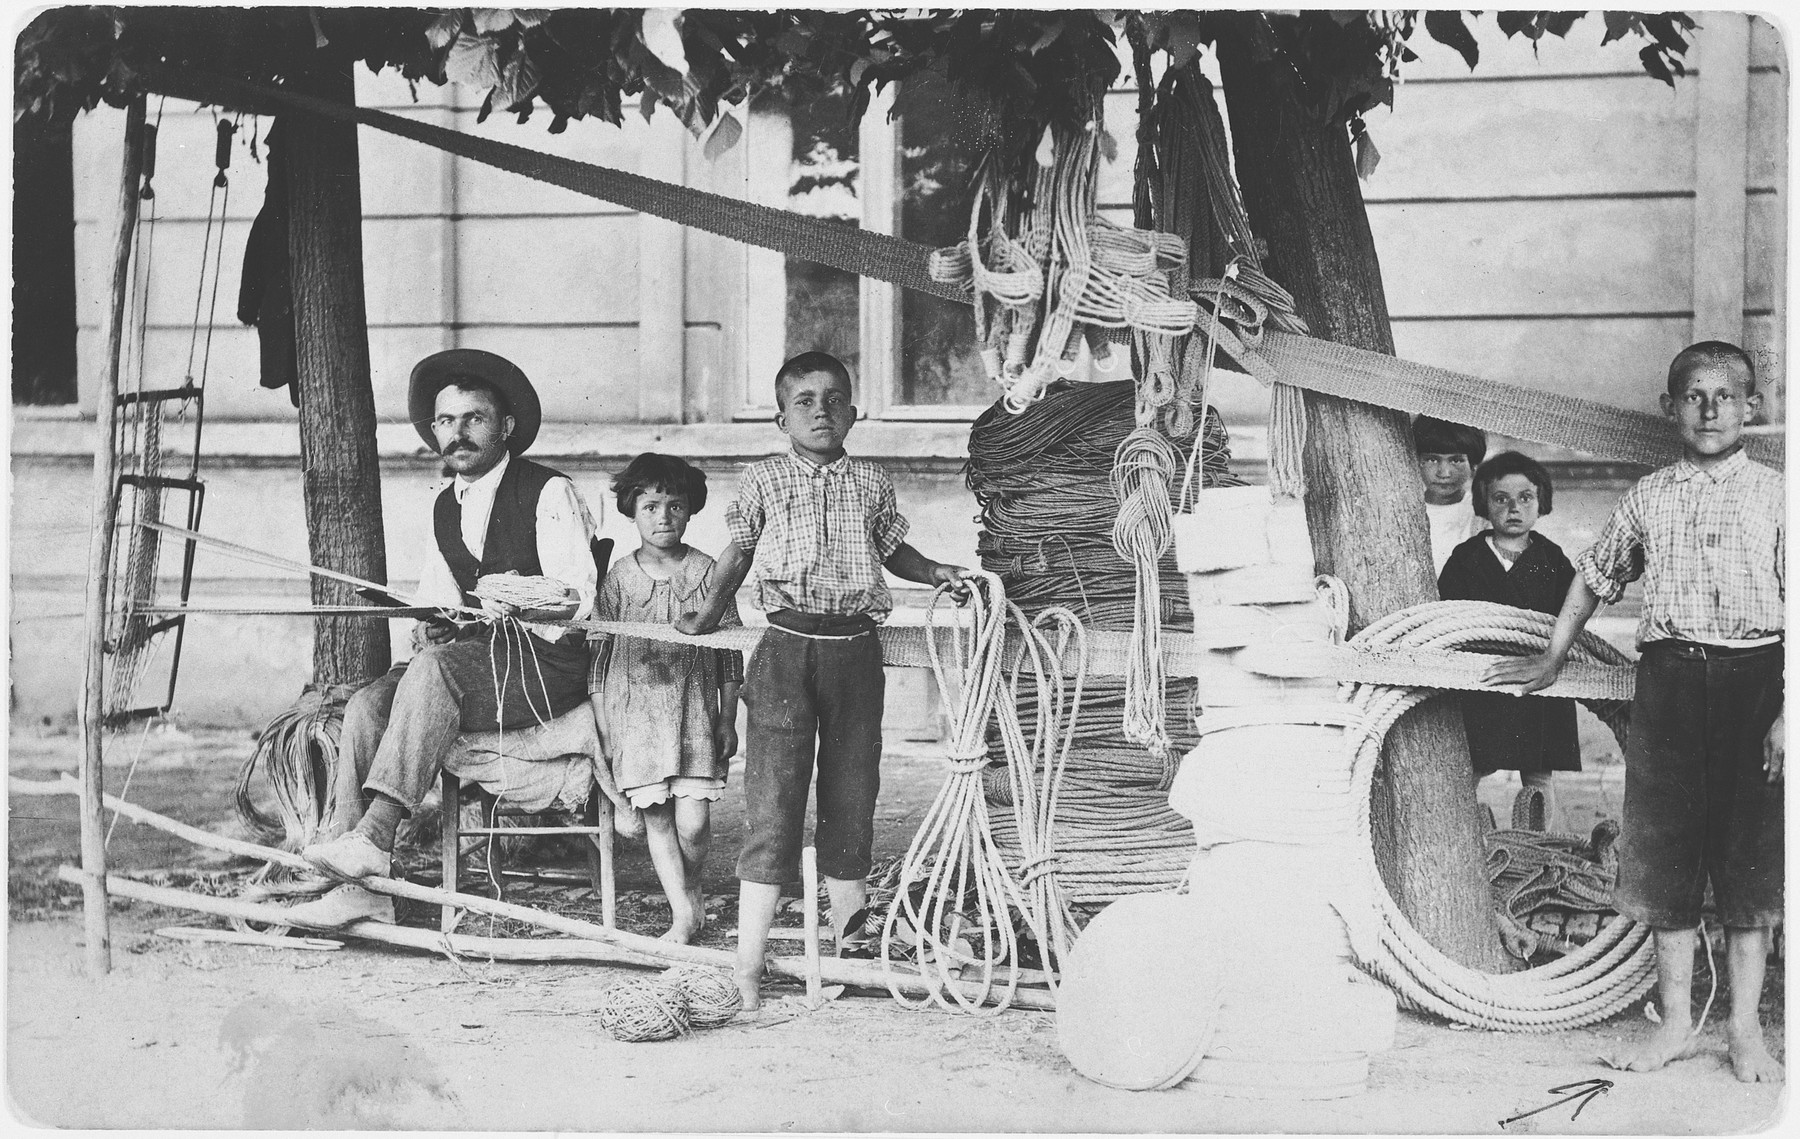 Moshe Lowy apprentices as a rope maker in the workshop of Mikhailo Radosavljevich.